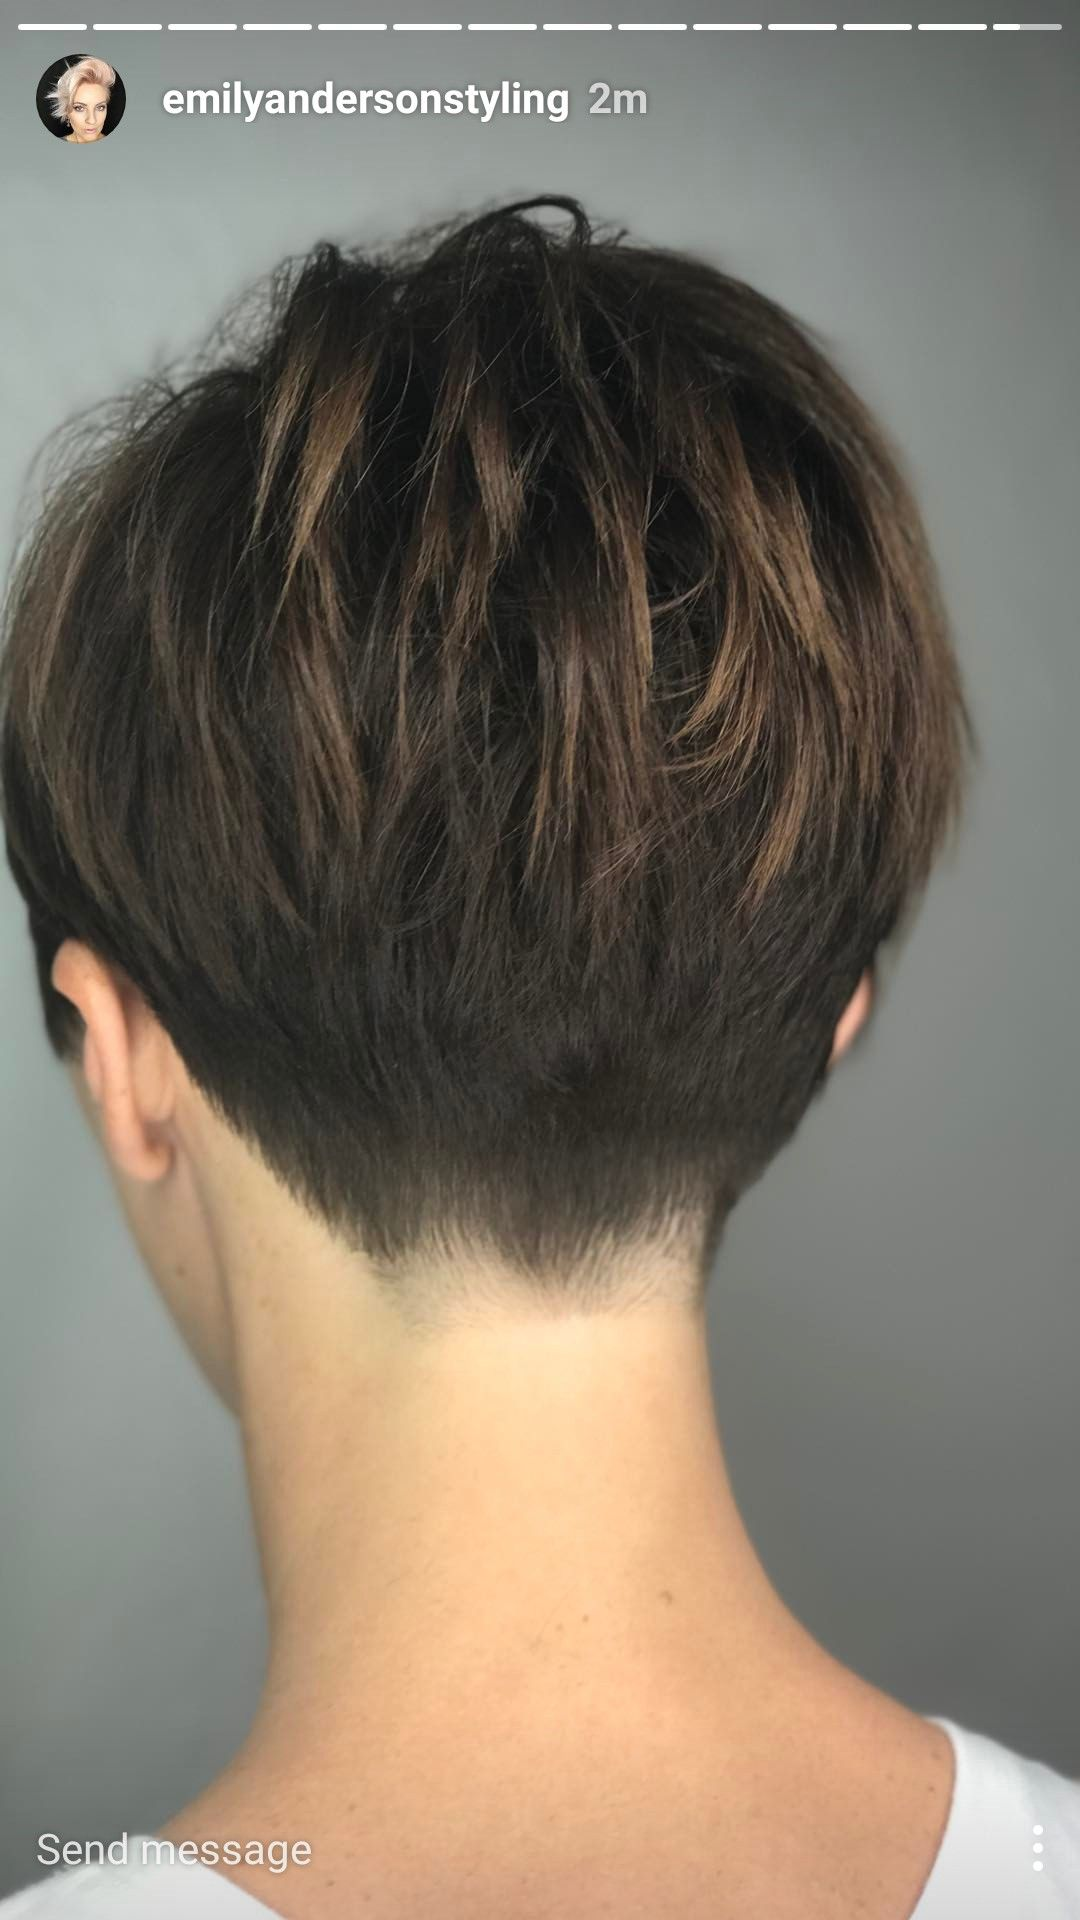 Short Hair From Behind Short Hair Back Haircut For Thick Hair Short Hair Styles